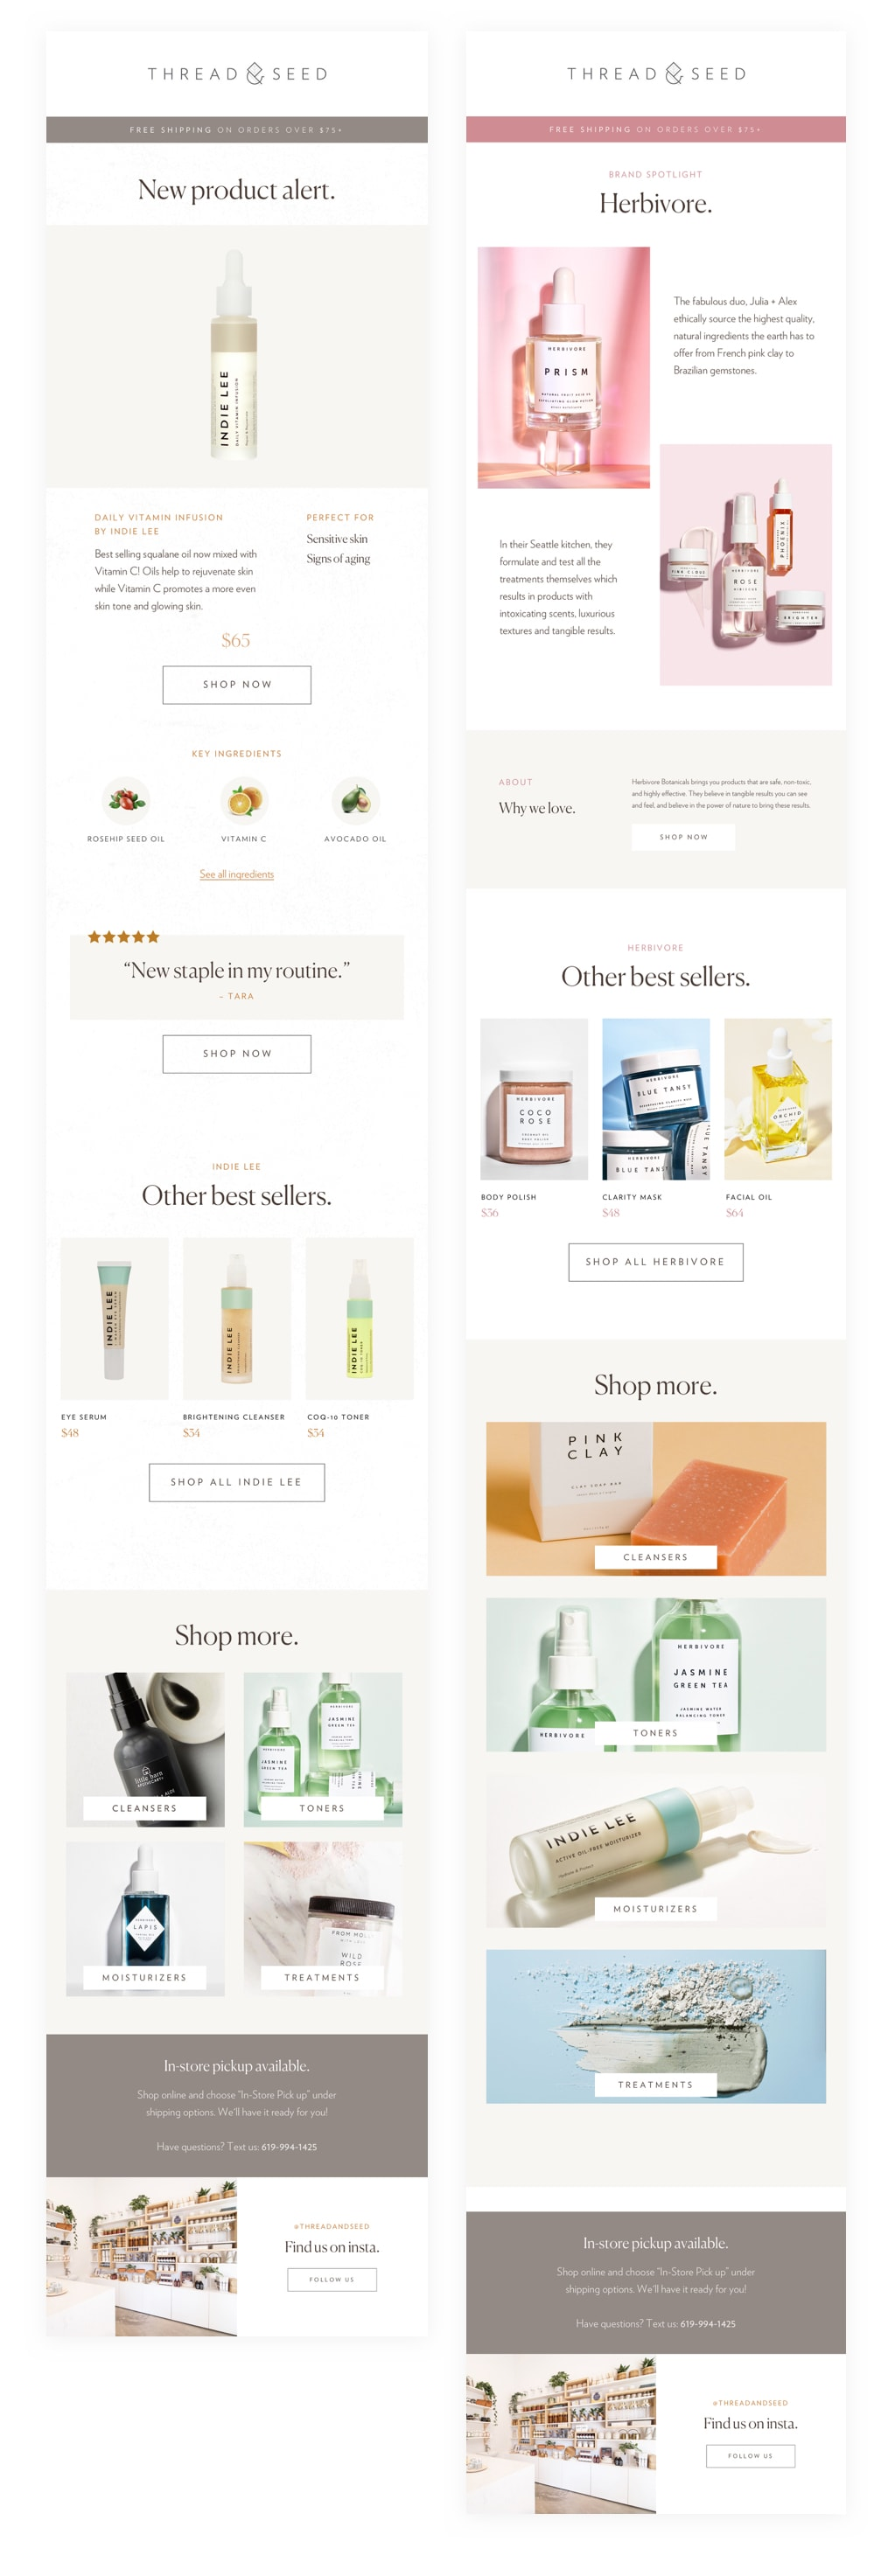 thread and seed templates design email-min.jpg